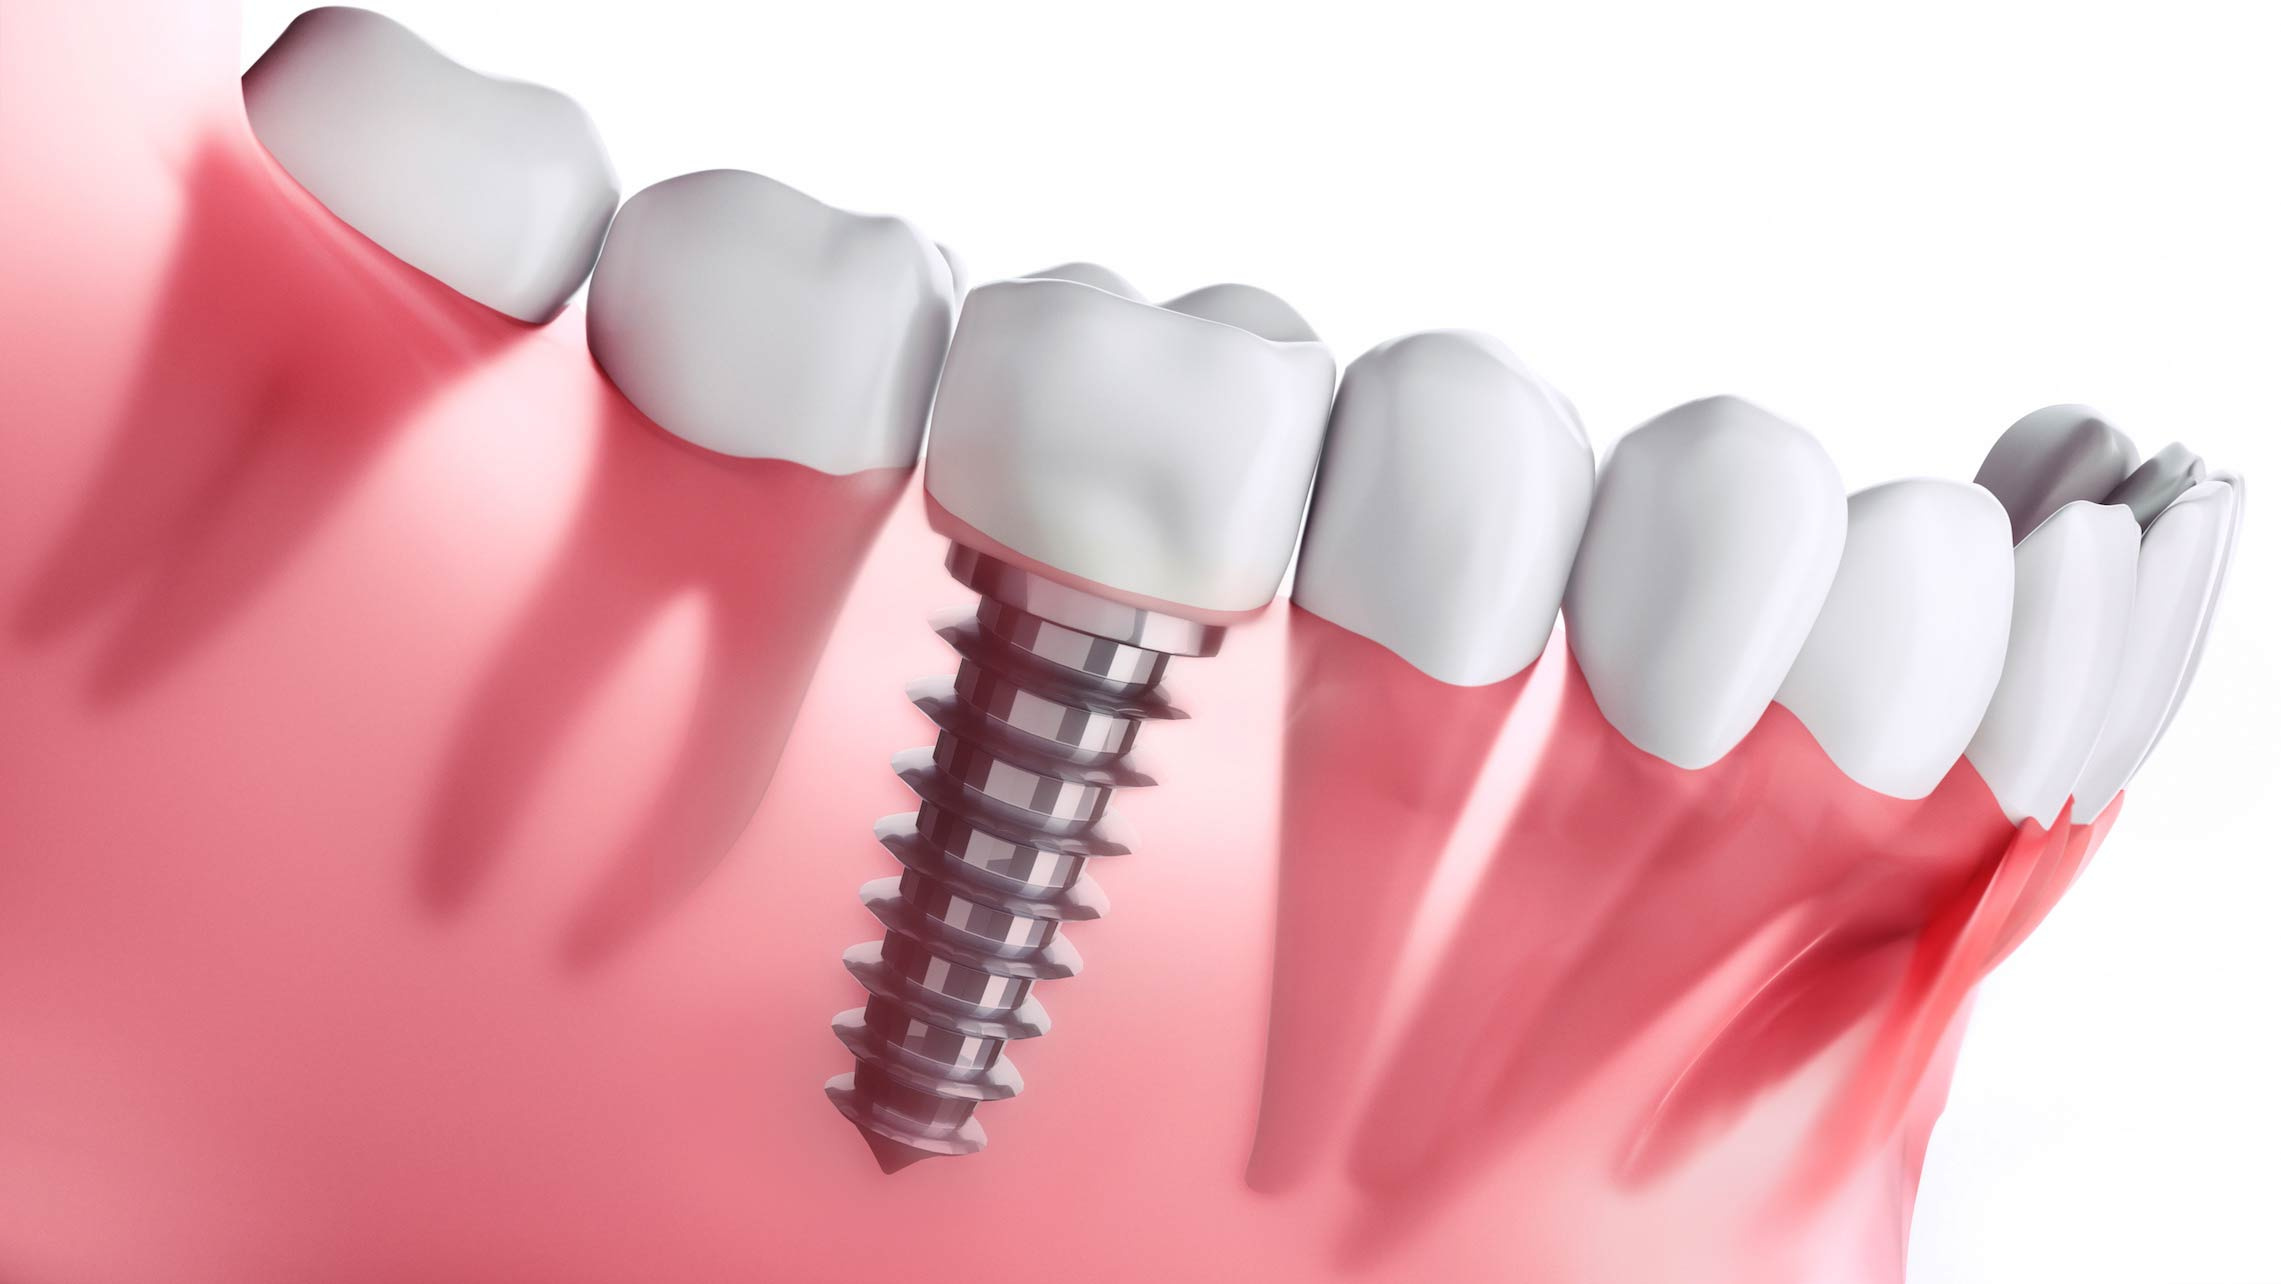 EXCLUSIVE DISTRIBUTOR  for a GLOBAL DENTAL IMPLANT AND BONE GRAFT MATERIAL